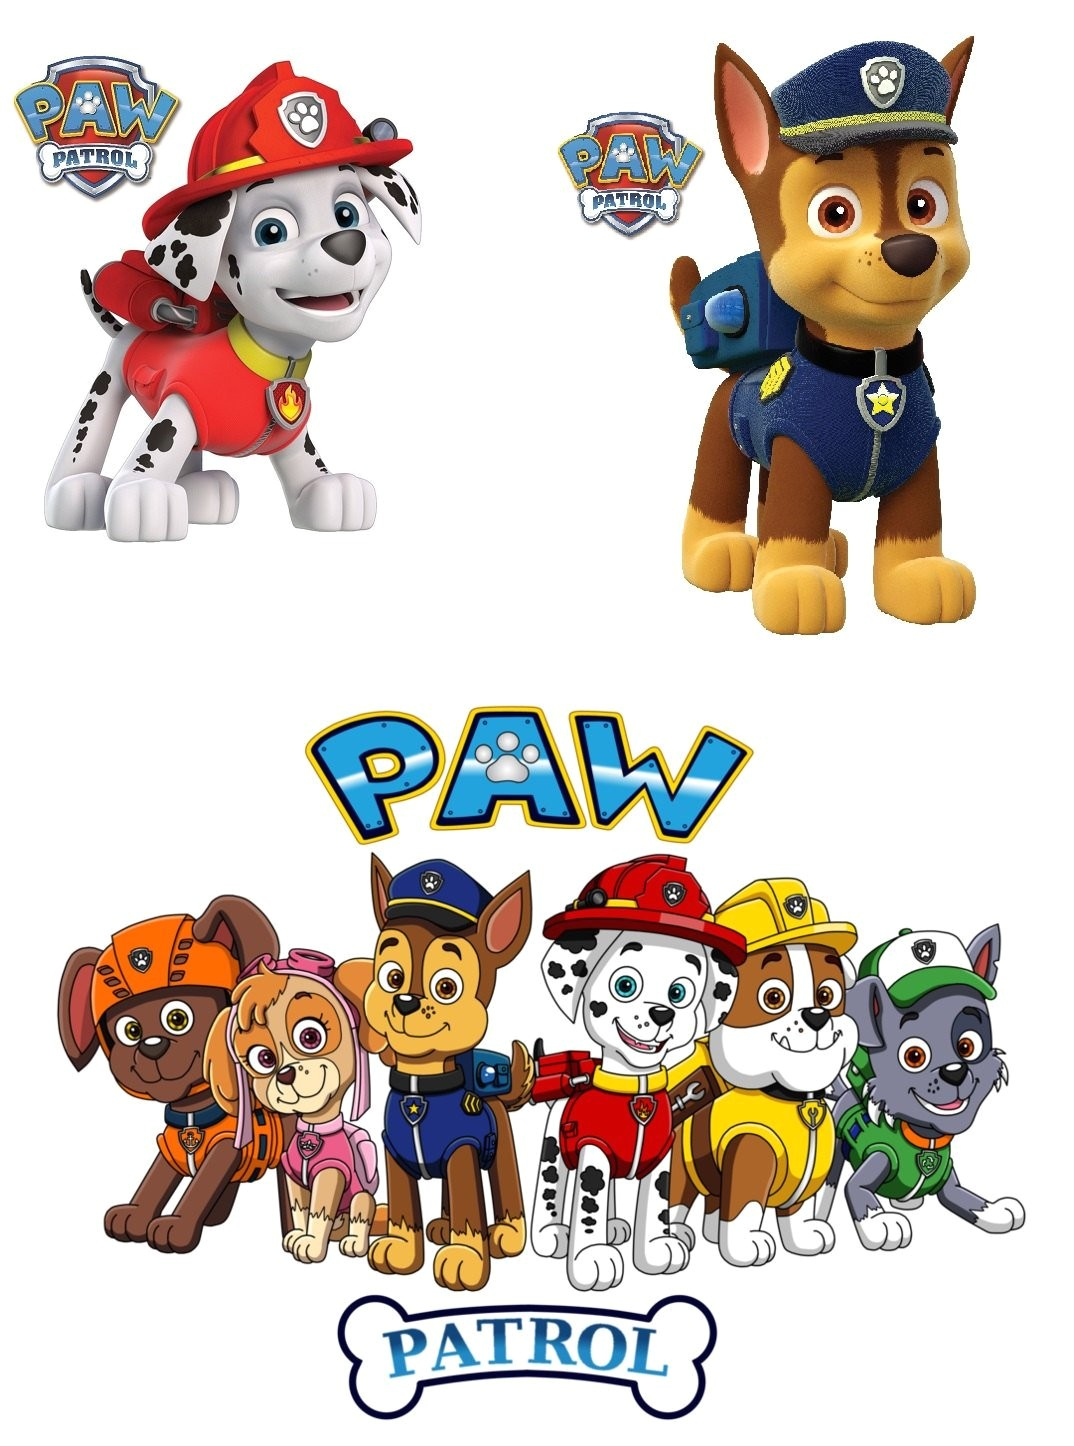 paw patrol t shirt iron on transfer 8x10